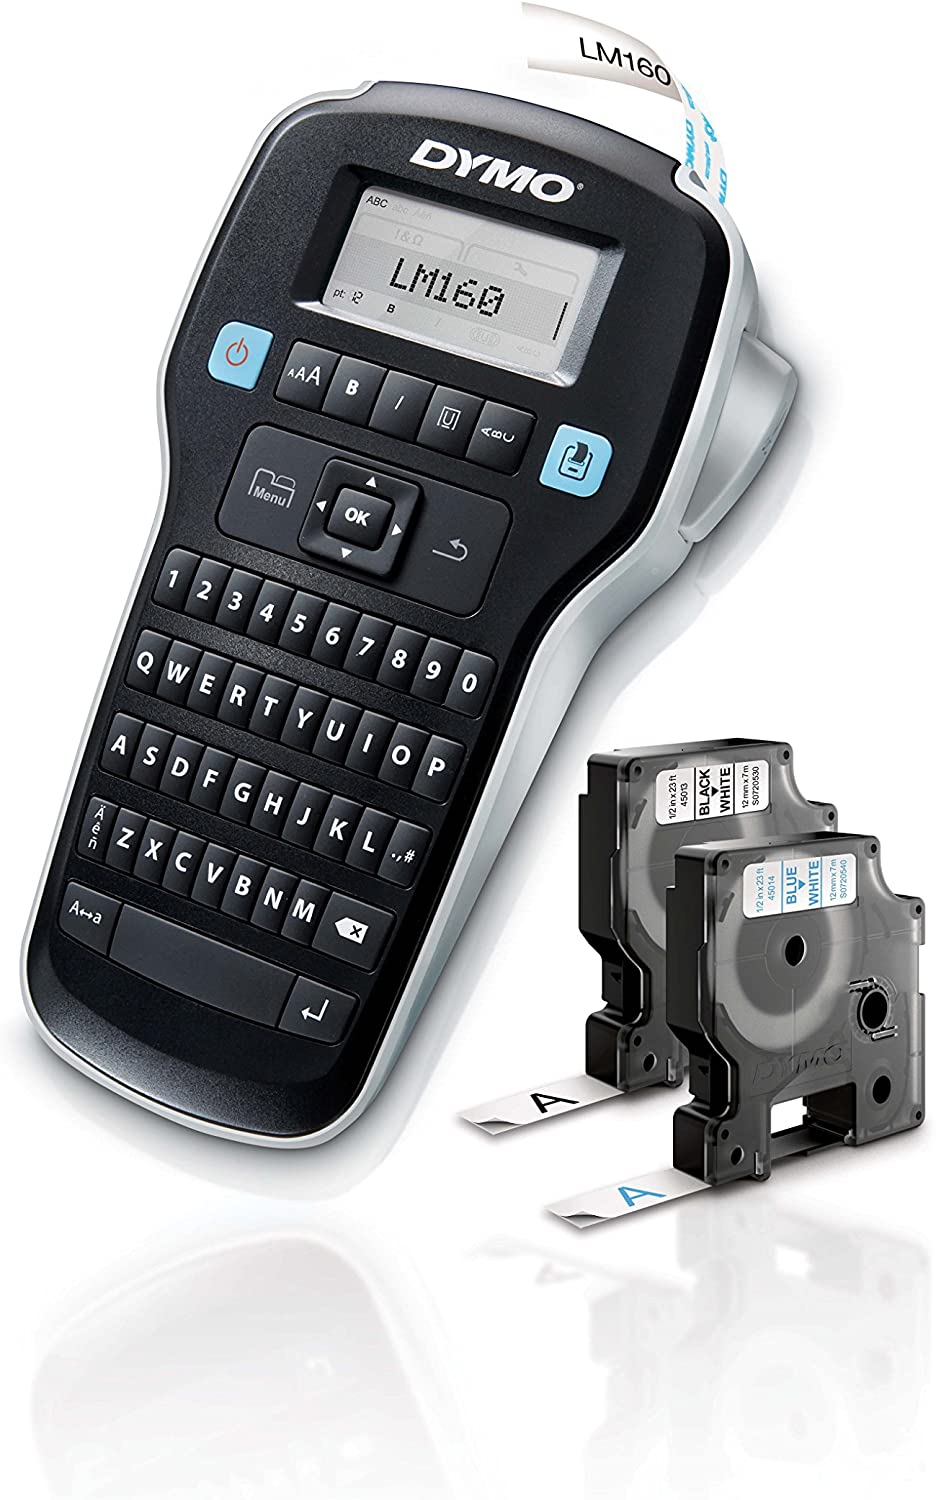 DYMO Label Maker with 2 D1 DYMO Label Tapes | LabelManager 160 Portable Label Maker, QWERTY Keyboard, One-Touch Smart Keys, Easy-to-Use, For Home & Office Organization : Office Products